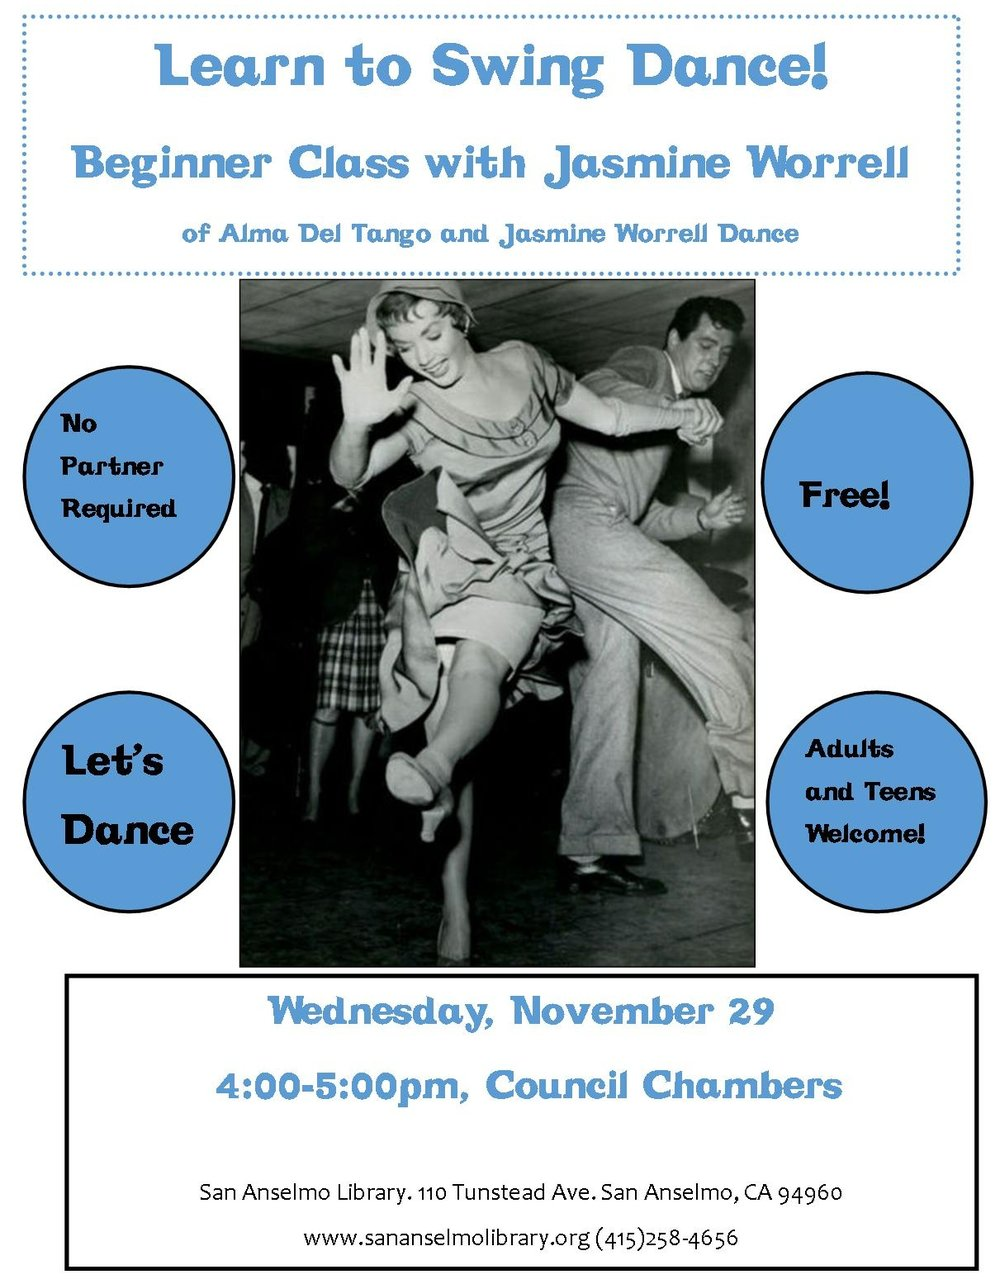 beginninGSwing Workshop for ALl AGES! FREE 4 ALL. - Enjoy a FREE swing dance workshop in the historic and stunning San Anselmo Library.November 29th from 4-5PM.Sign up: 415-258-4656.